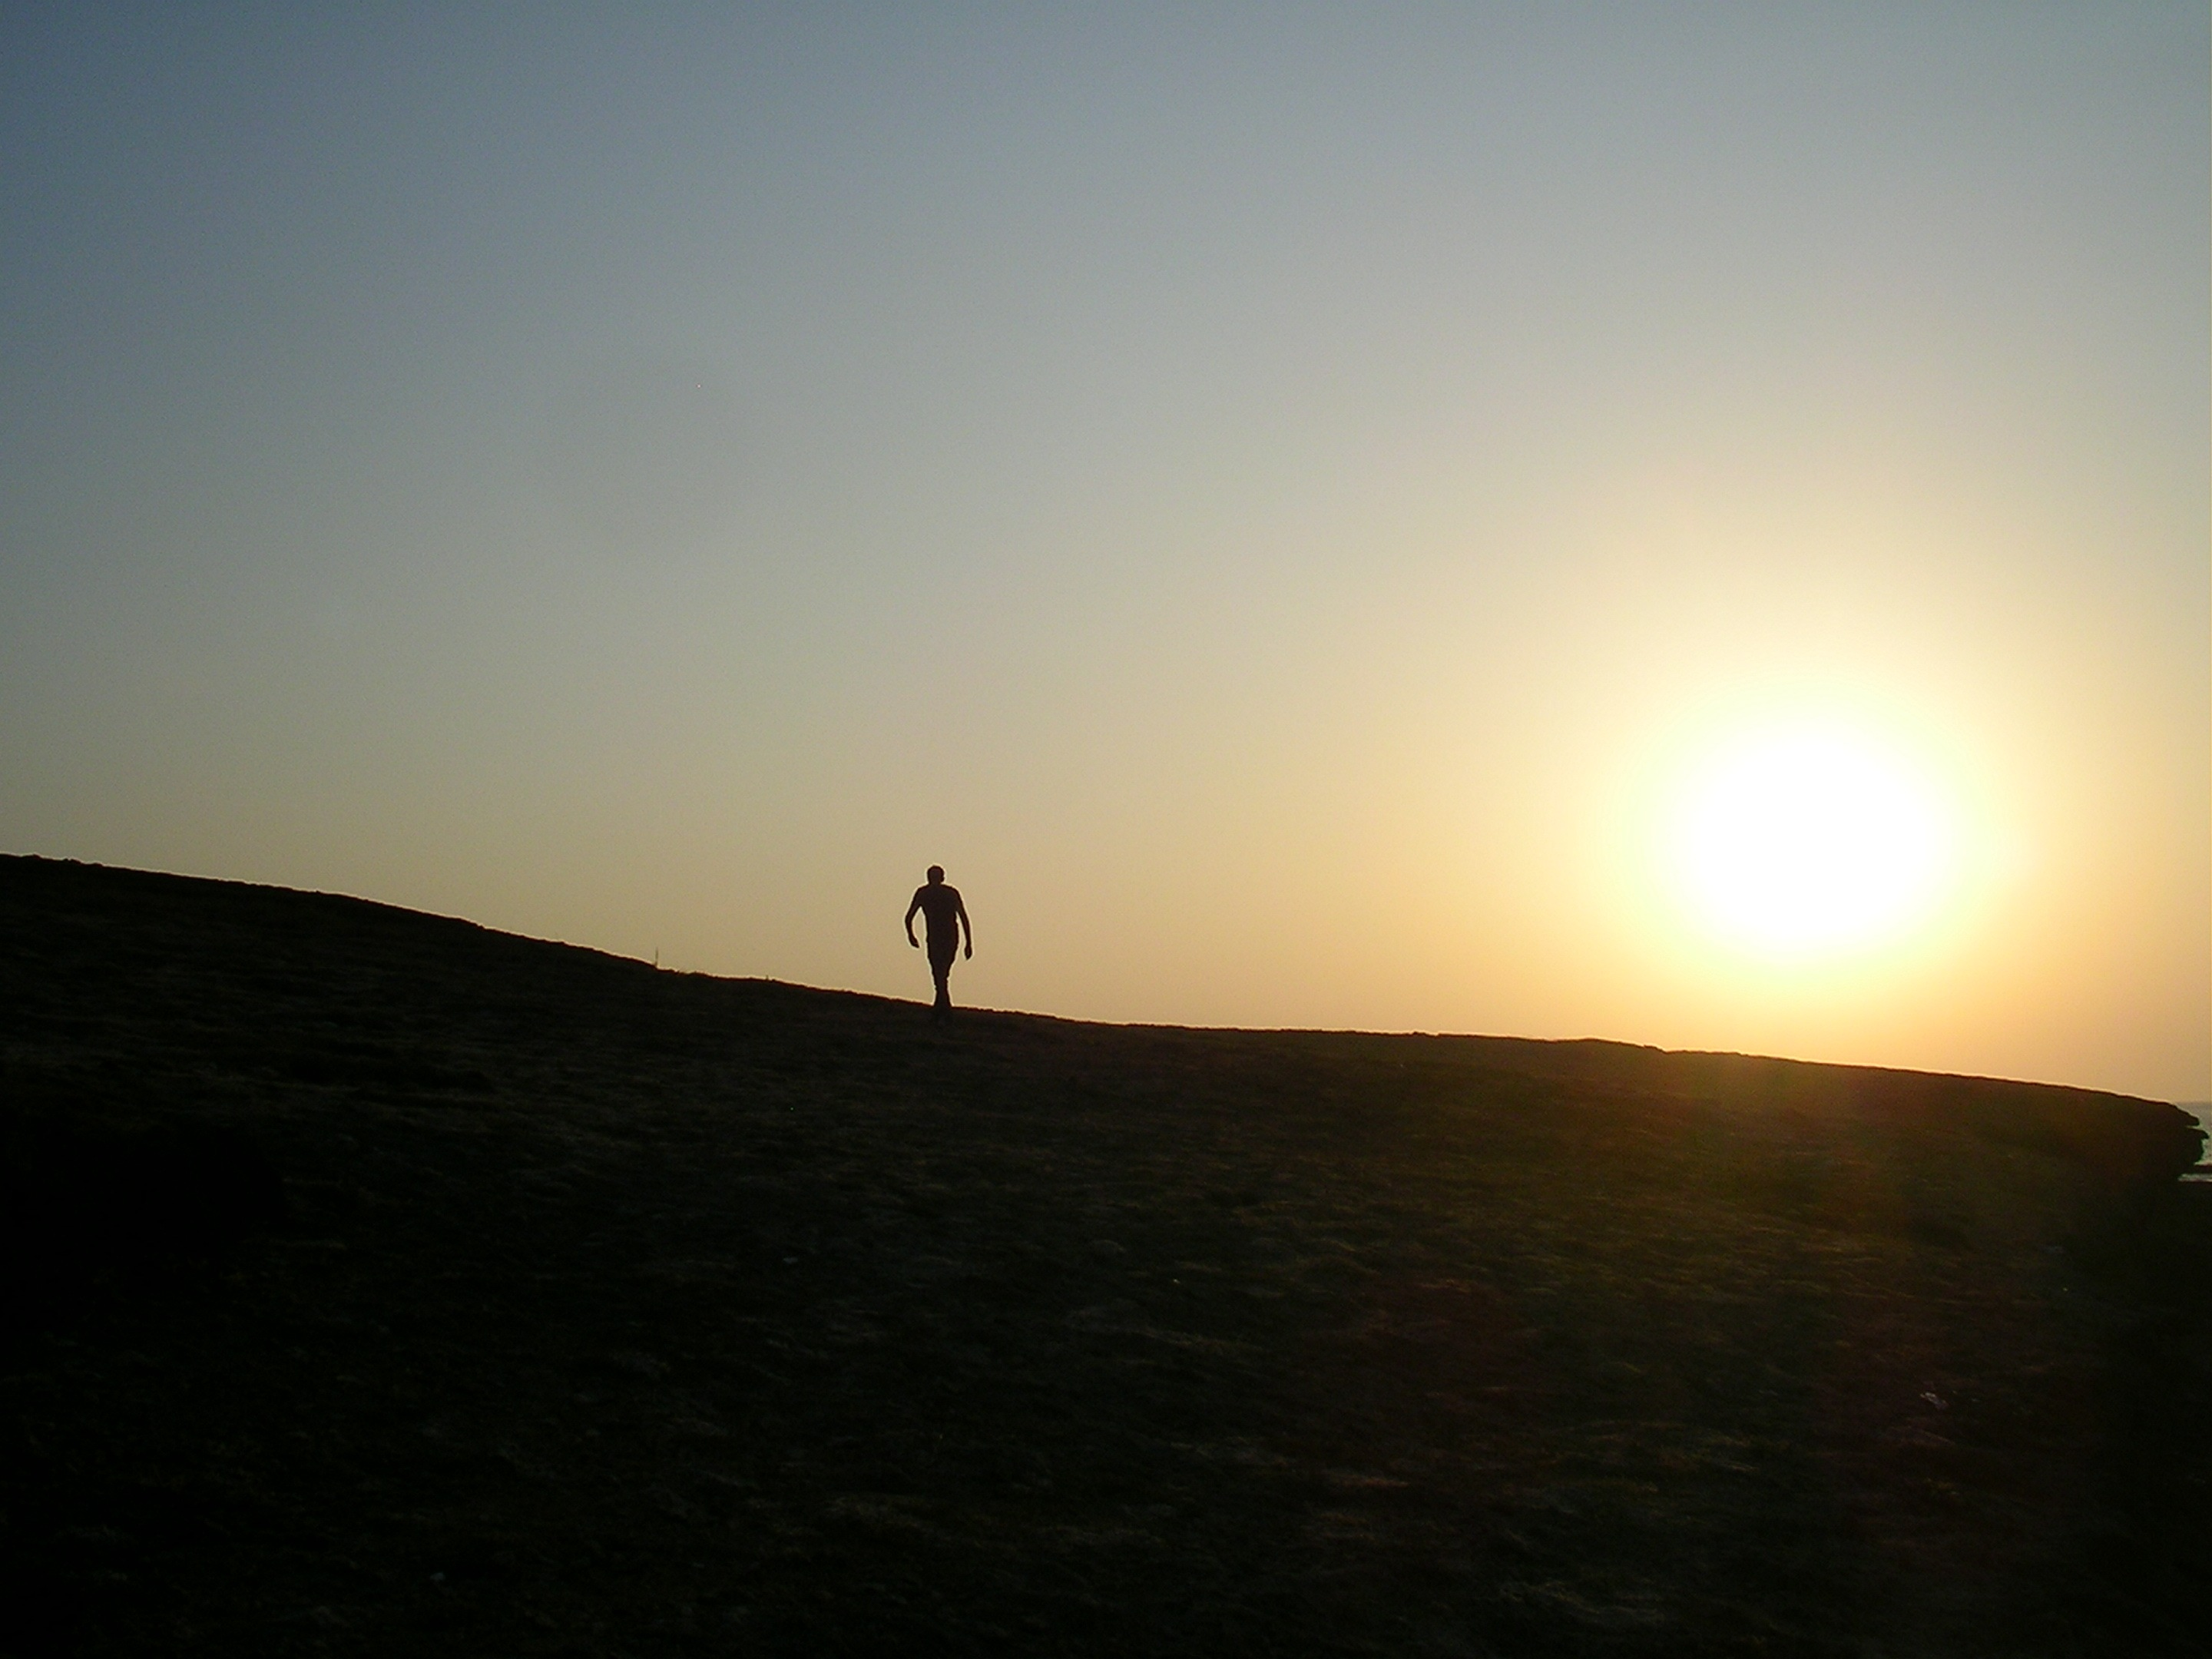 2012-04-11-Walkingintothesunset.jpg